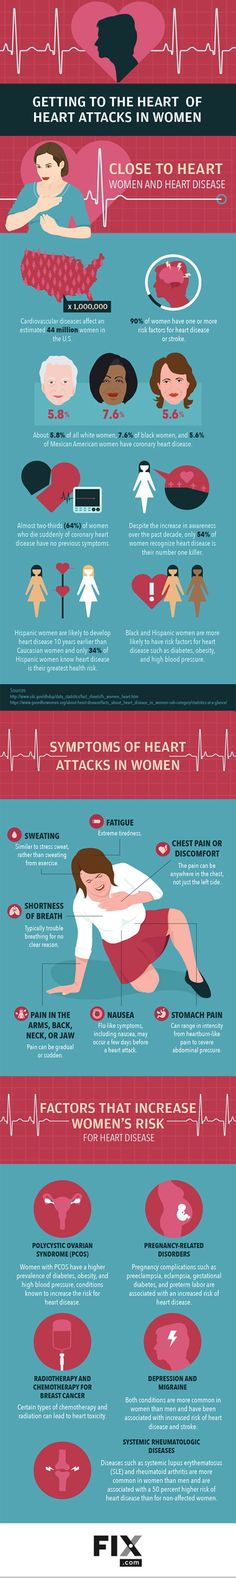 Heart Attack Symptoms in Women Infographics and article by Dr. Carolina Gongora, cardiologist | Fix.com #womenshealth #heartdisease #heartattacks #womensissues #genderdifferences Understanding the Risks, Signs, Symptoms, and Treatment of Heart Attacks in Women https://www.fix.com/blog/heart-attacks-in-women/